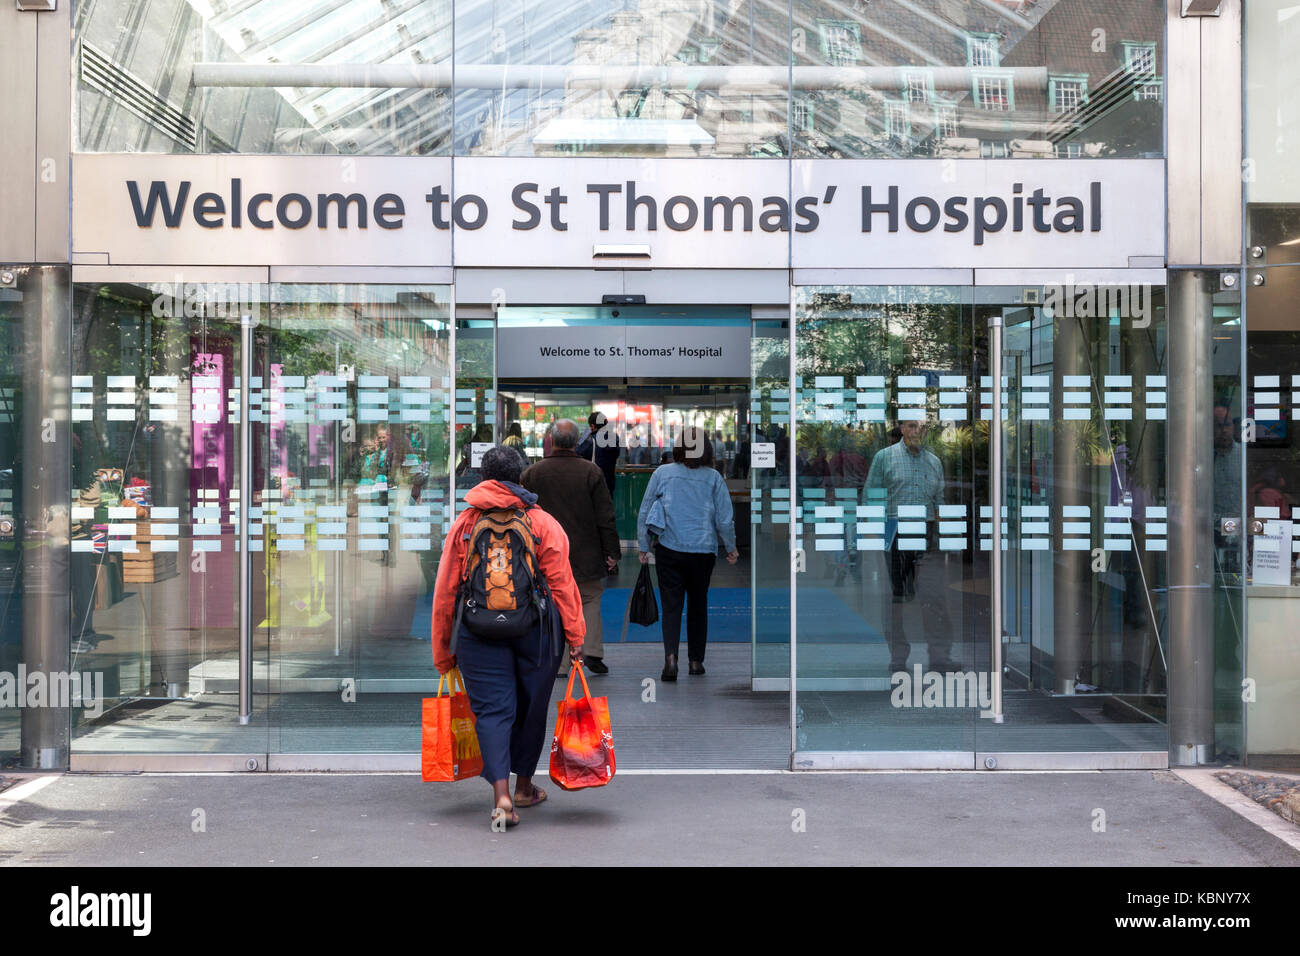 St Thomas' Hospital, London, England, UK - Stock Image